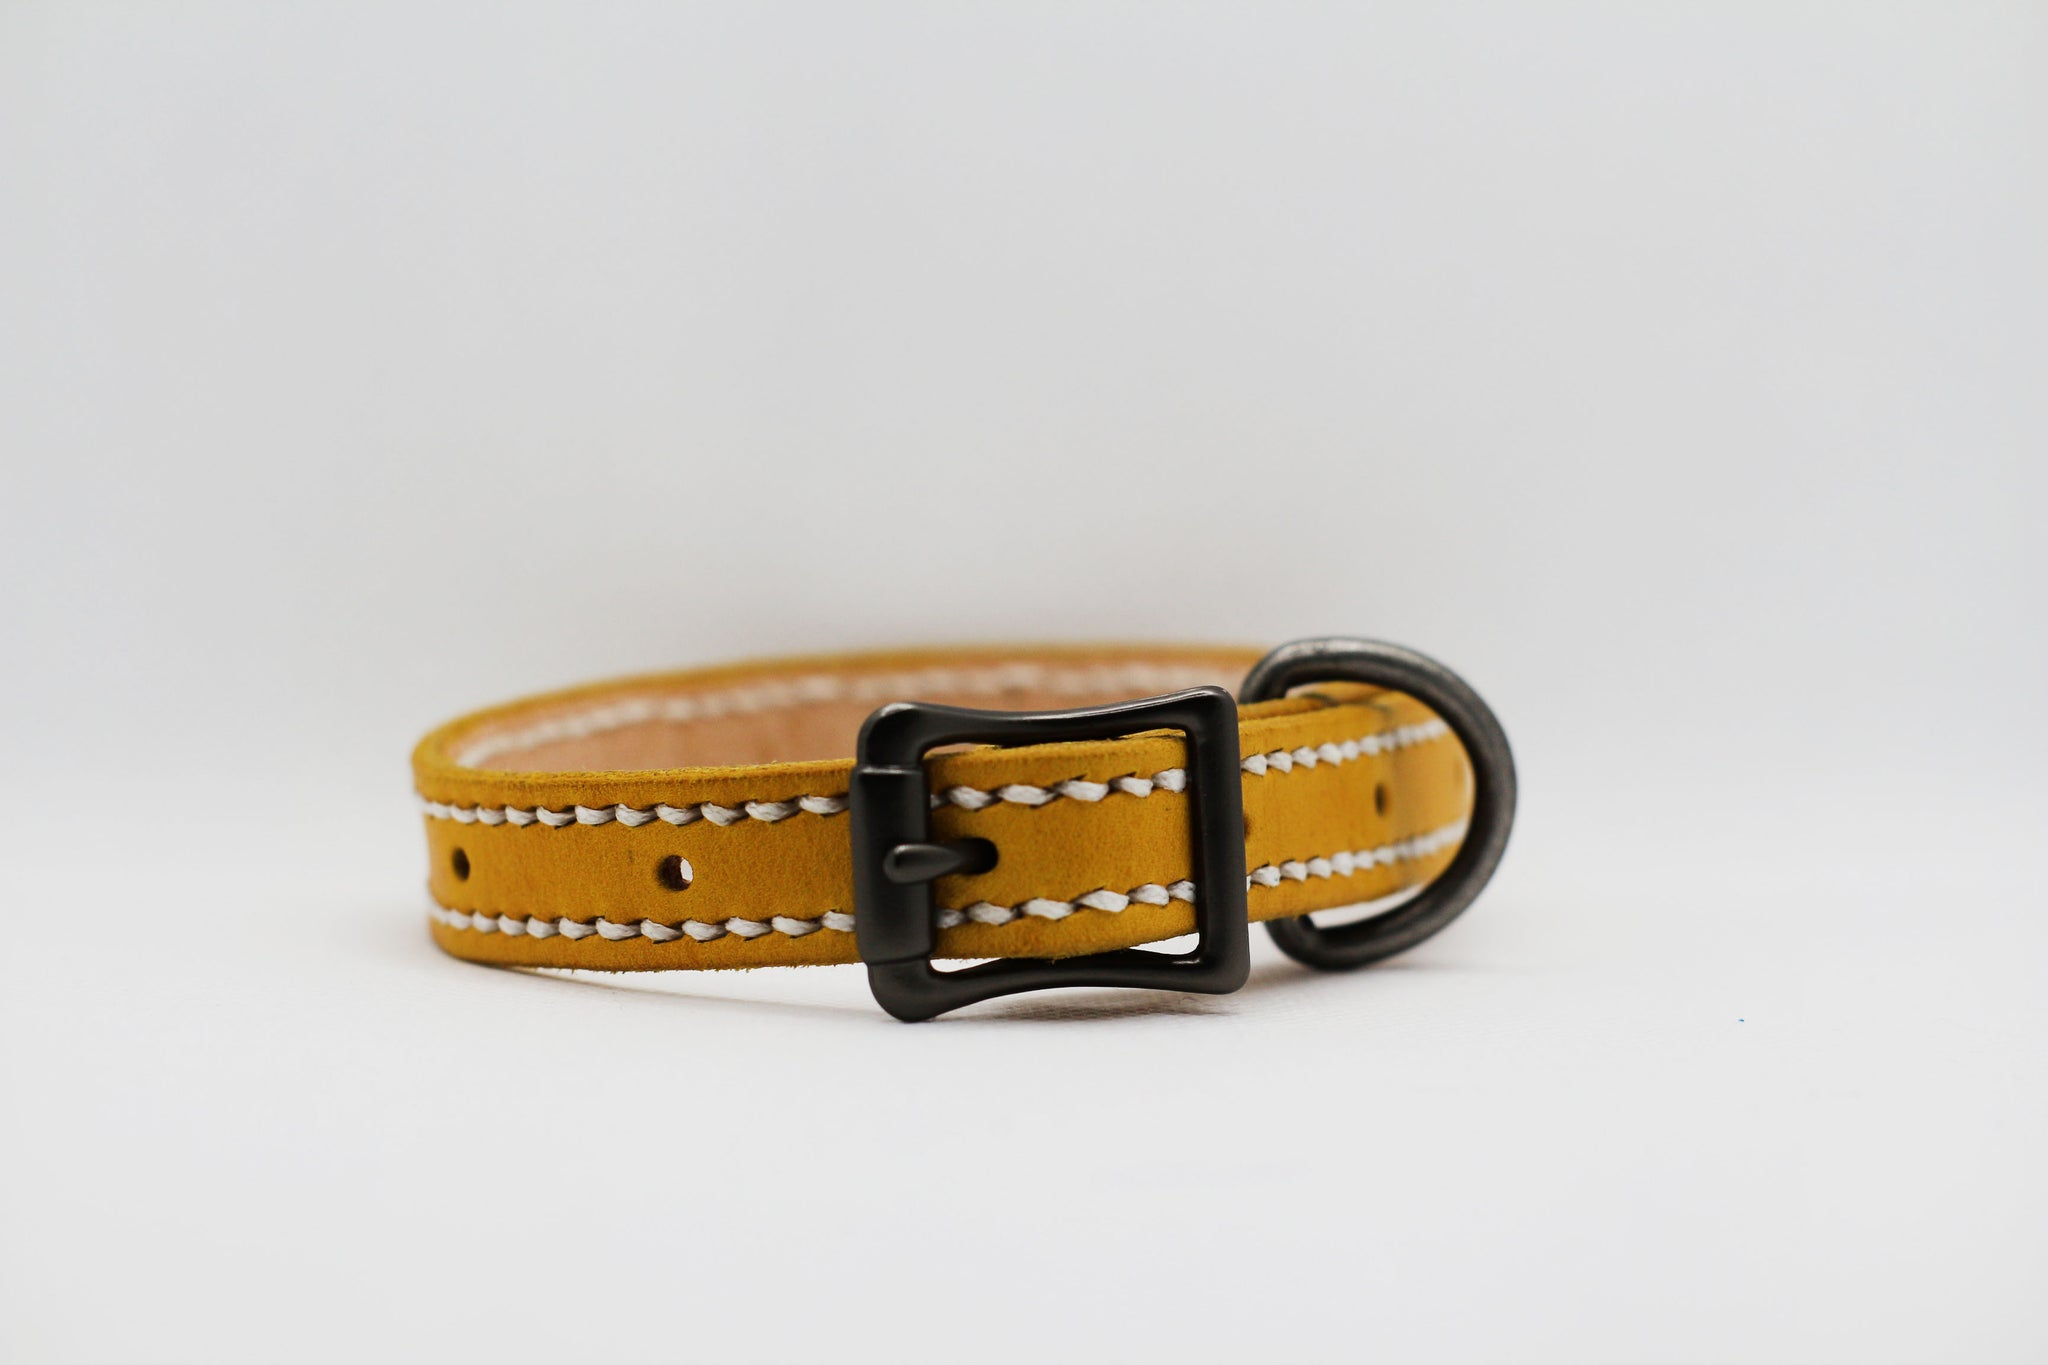 Standard Leather Collar with Stitching